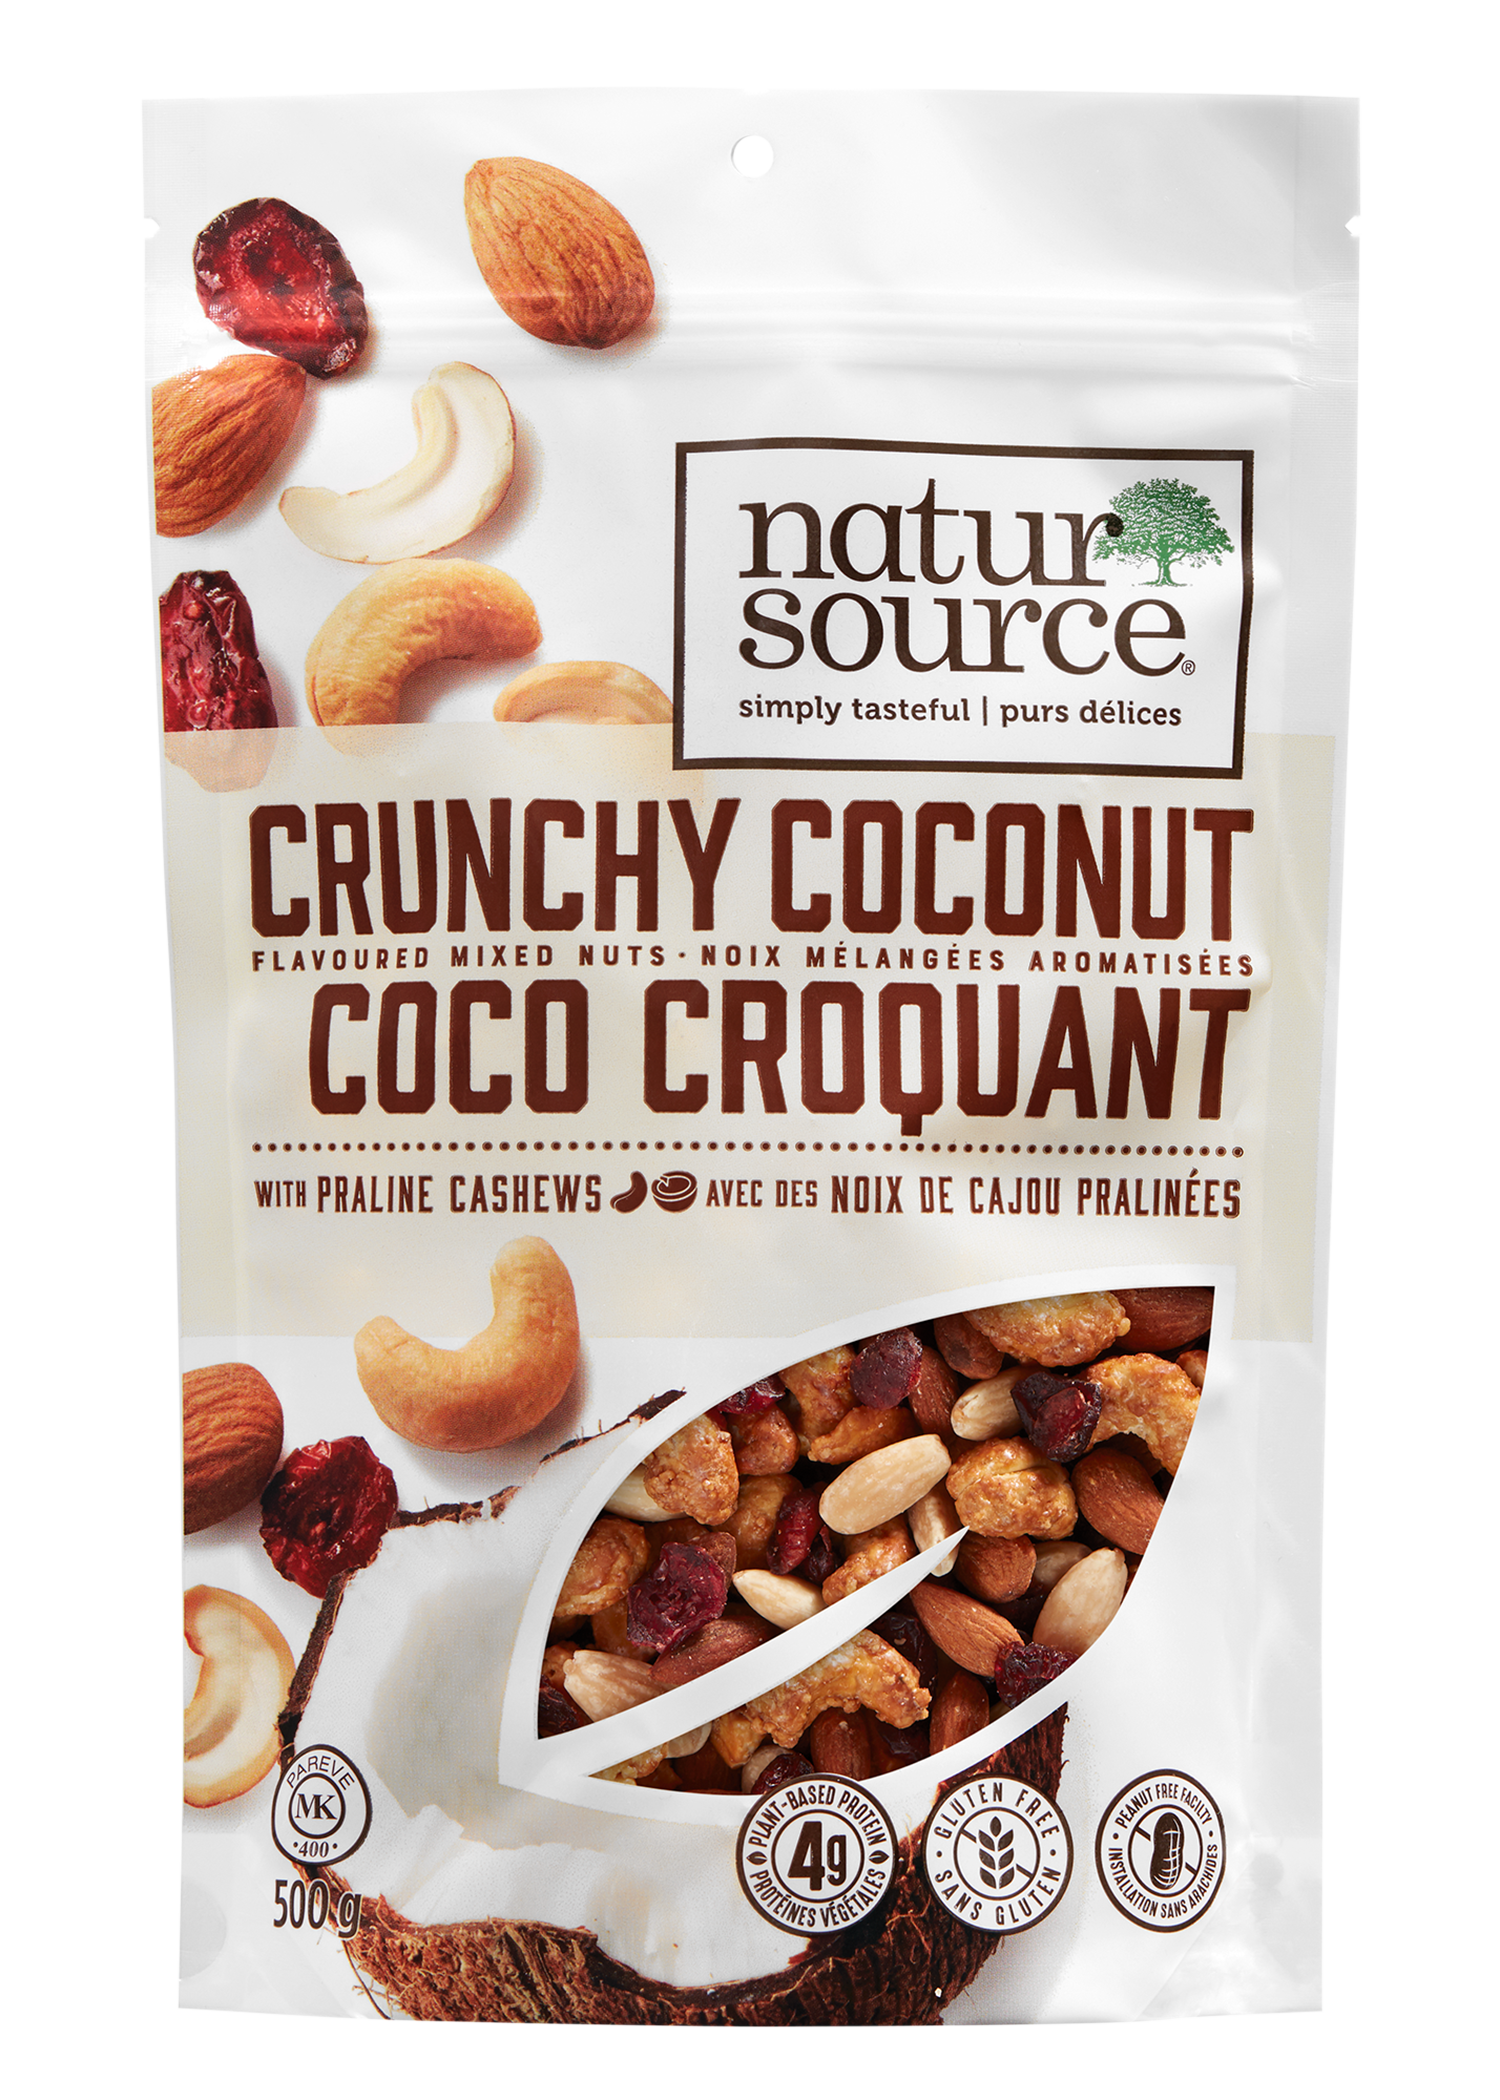 natursource Crunchy Coconut Flavoured mixed Nuts with praline Cashews